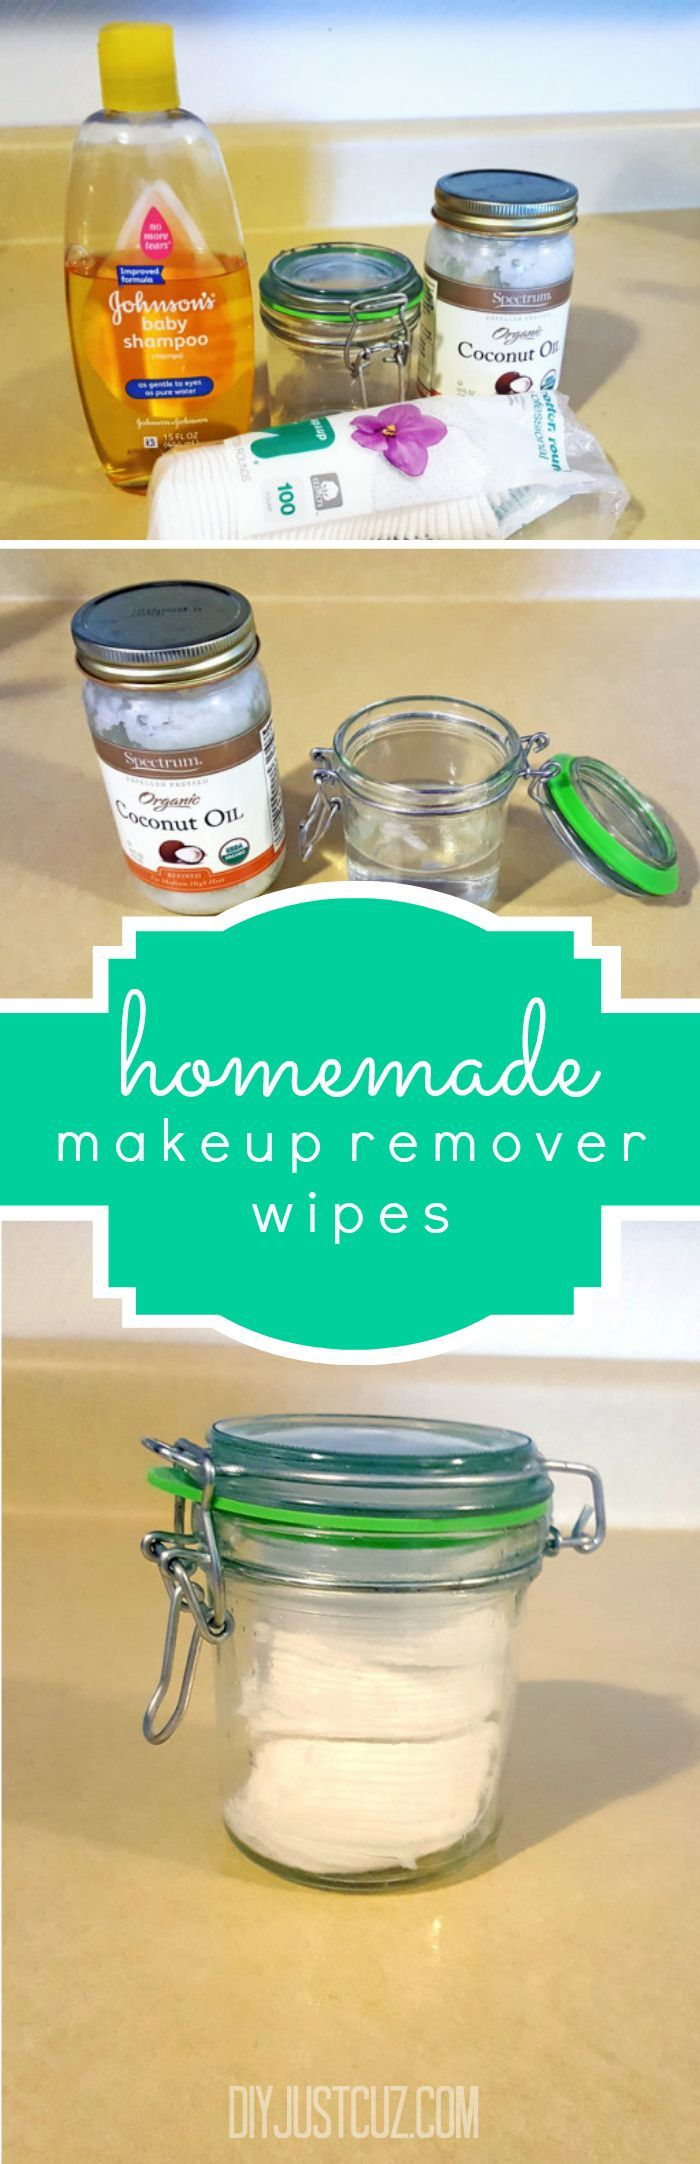 Best 25 makeup remover wipes ideas on pinterest diy makeup diy your photo charms compatible with pandora bracelets make your gifts special stop spending money on expensive homemade makeup remover wipes full of solutioingenieria Choice Image